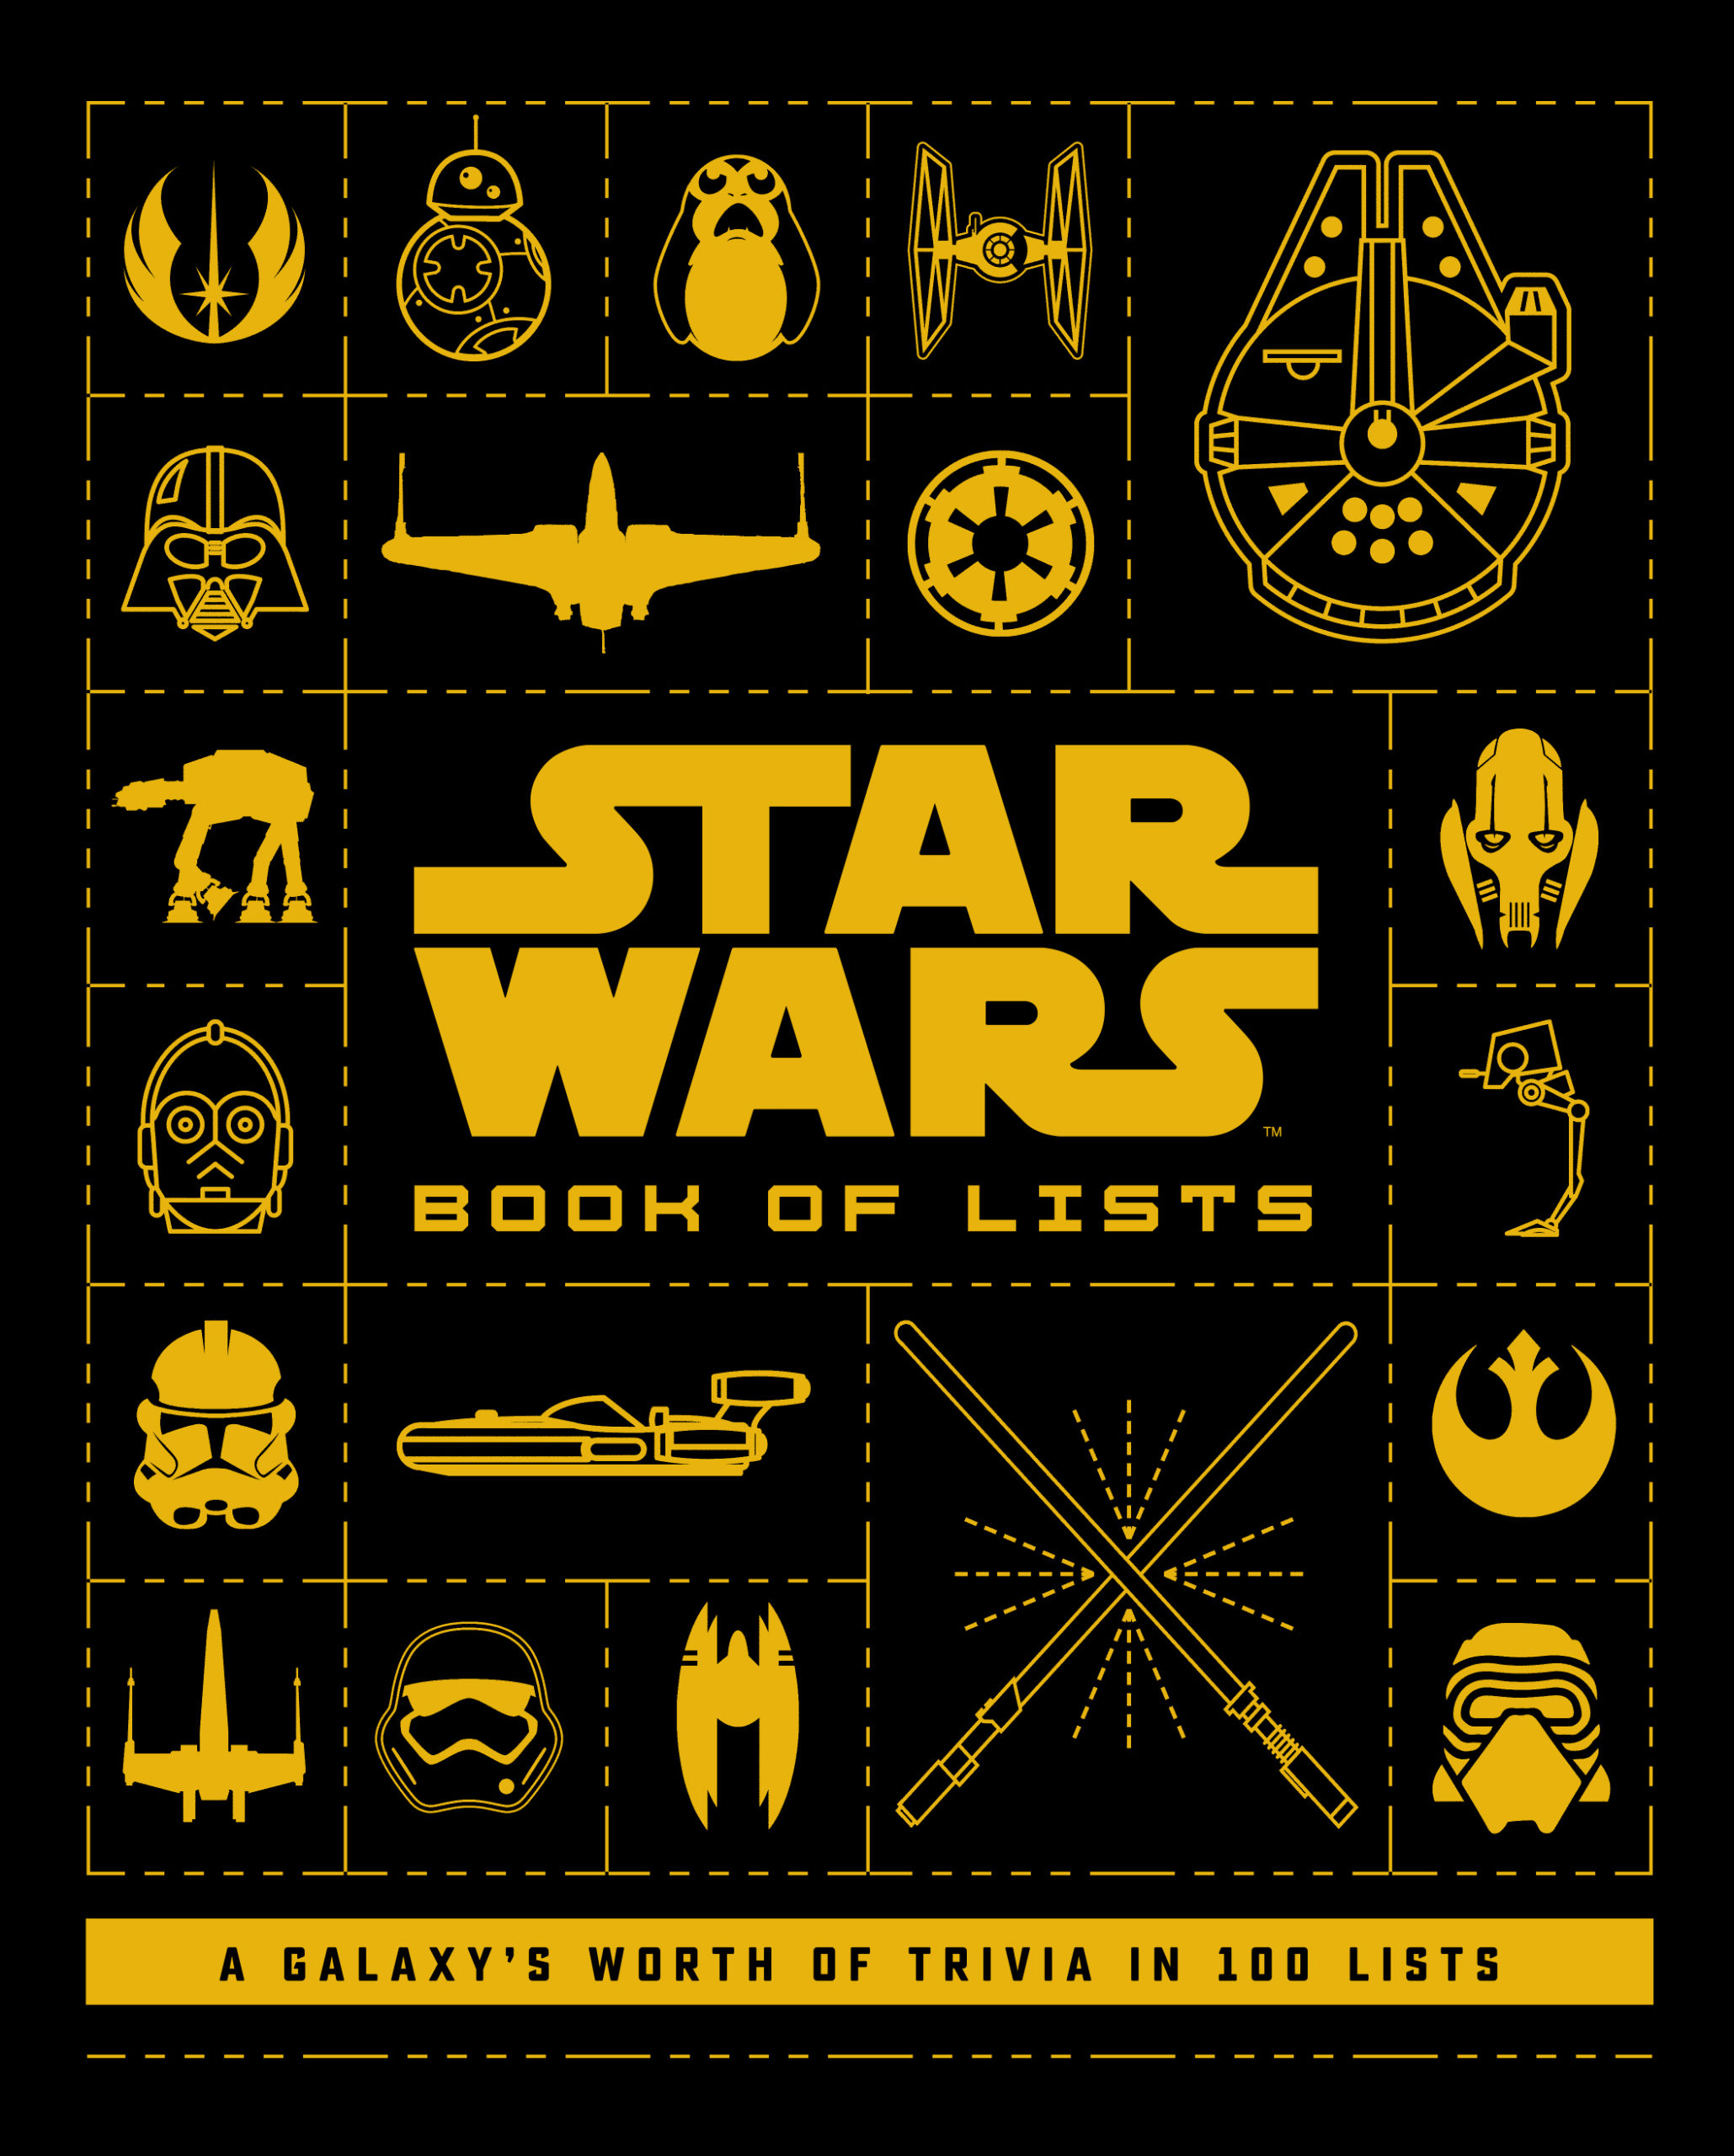 Book of Lists - 100 Lists Compiling a Galaxy's Worth of Trivia (14.04.2020)